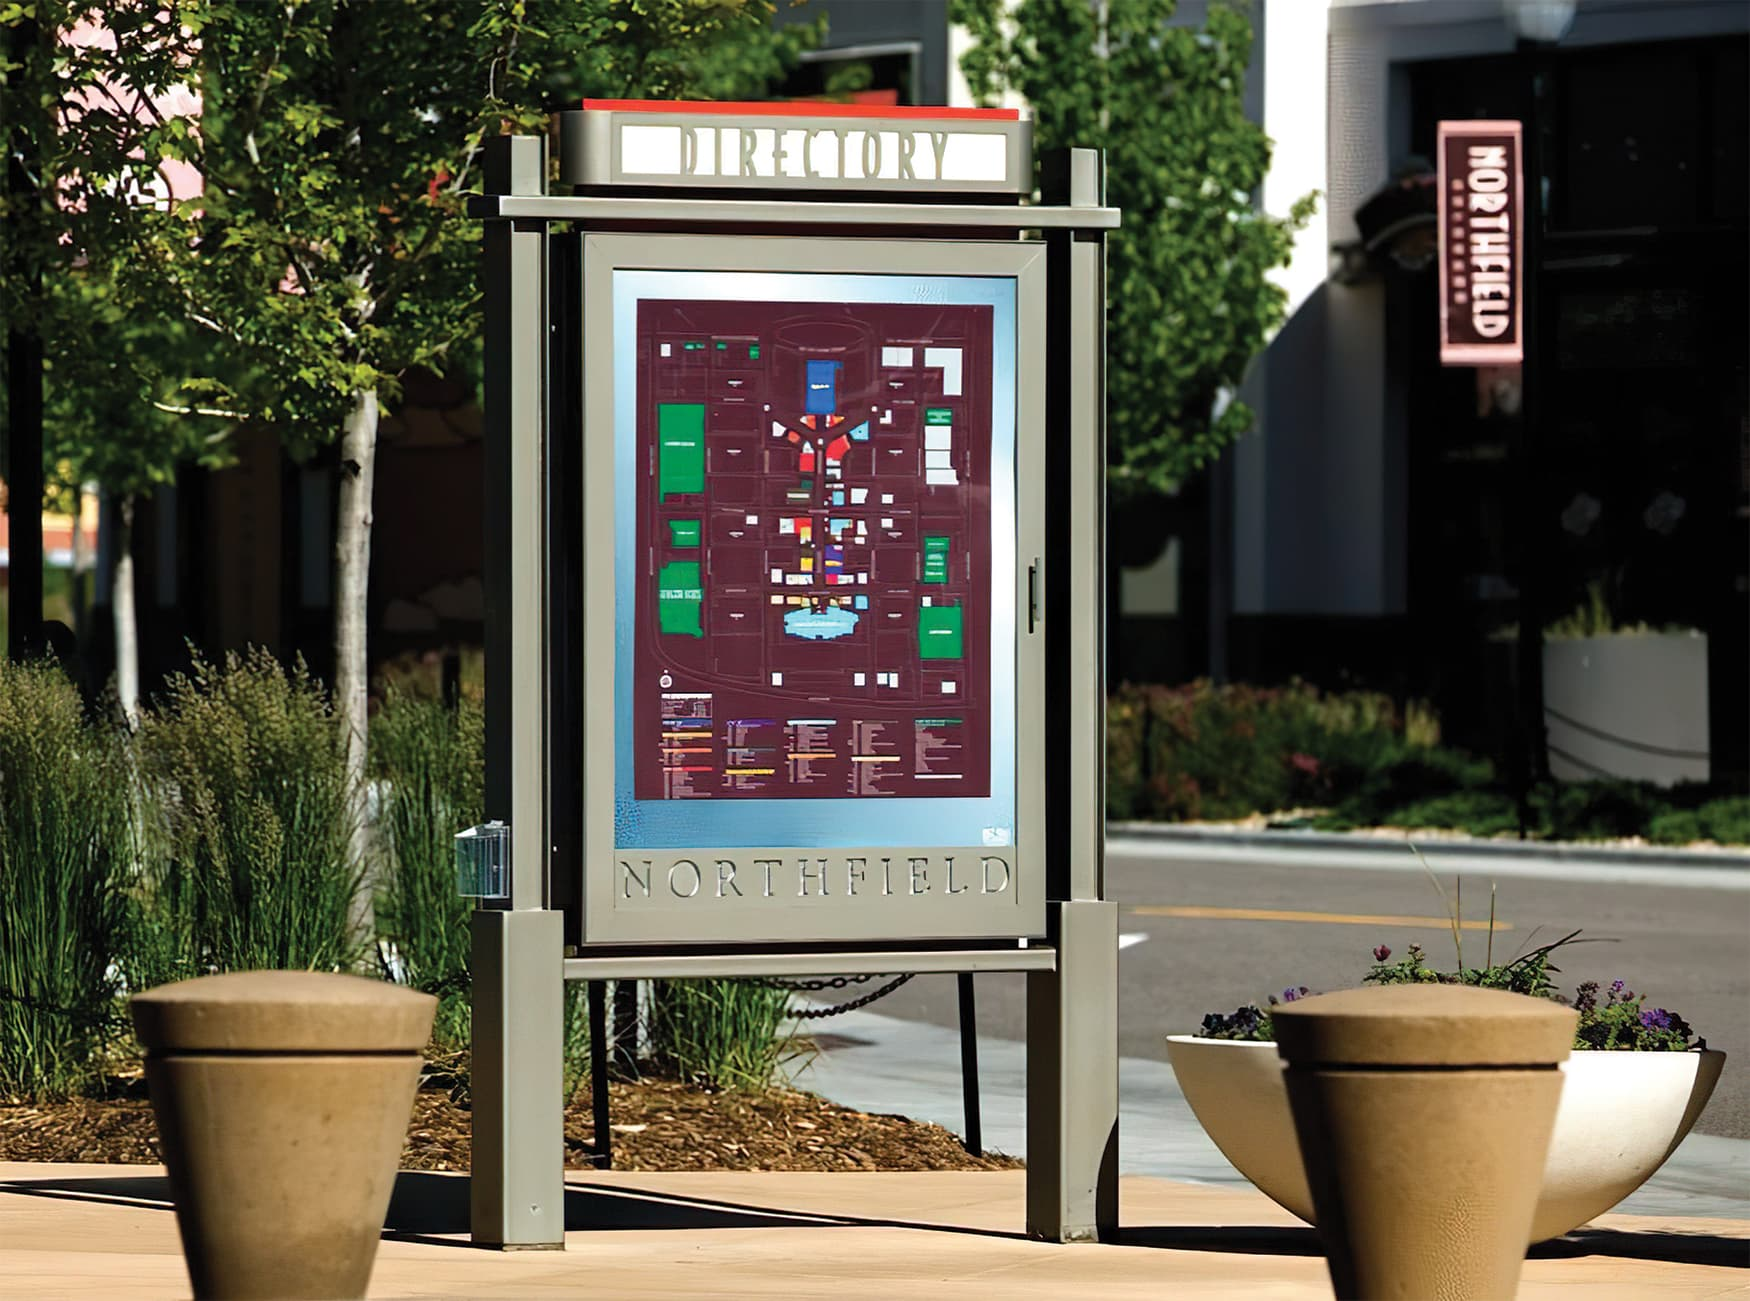 Northfield Stapleton Mall, an open-air retail center near Denver, Colorado. Pedestrian Wayfinding Design.